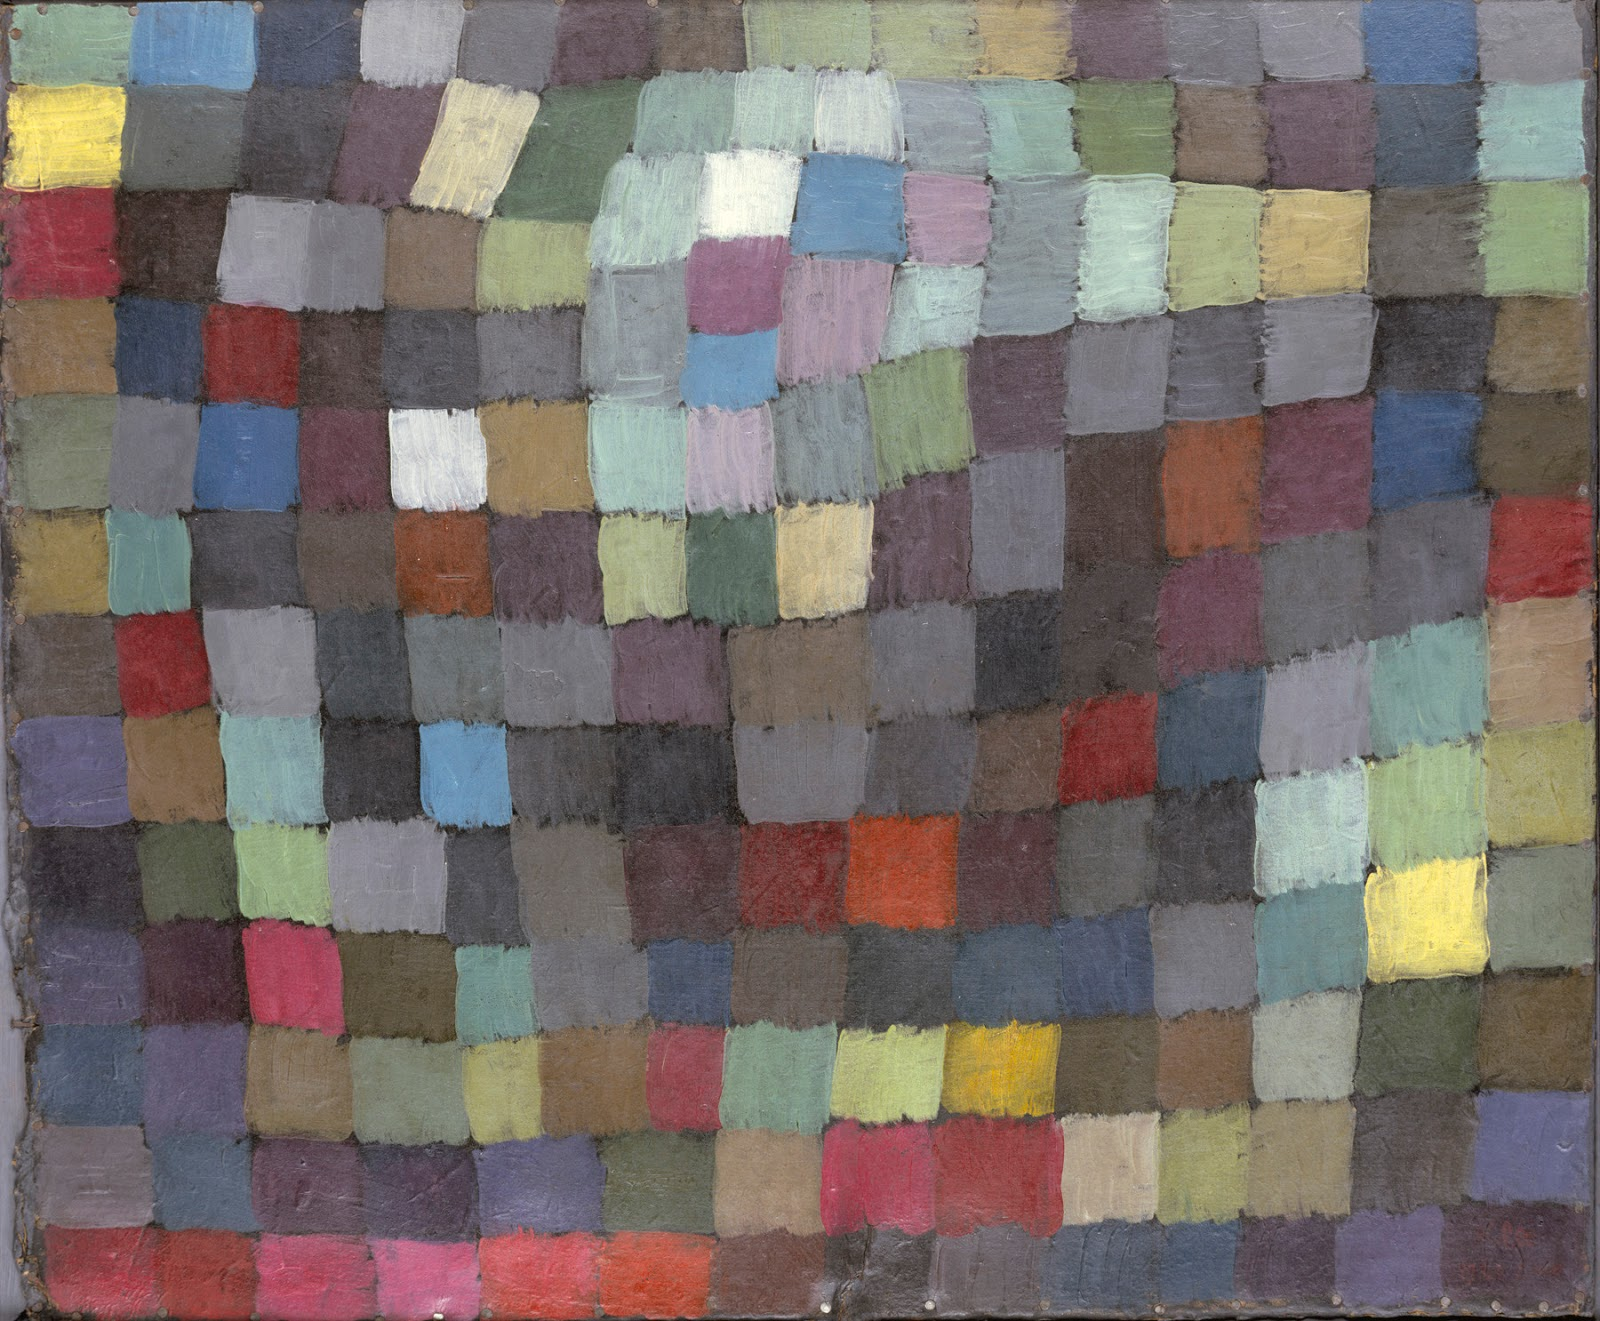 Artist of the Month: Paul Klee